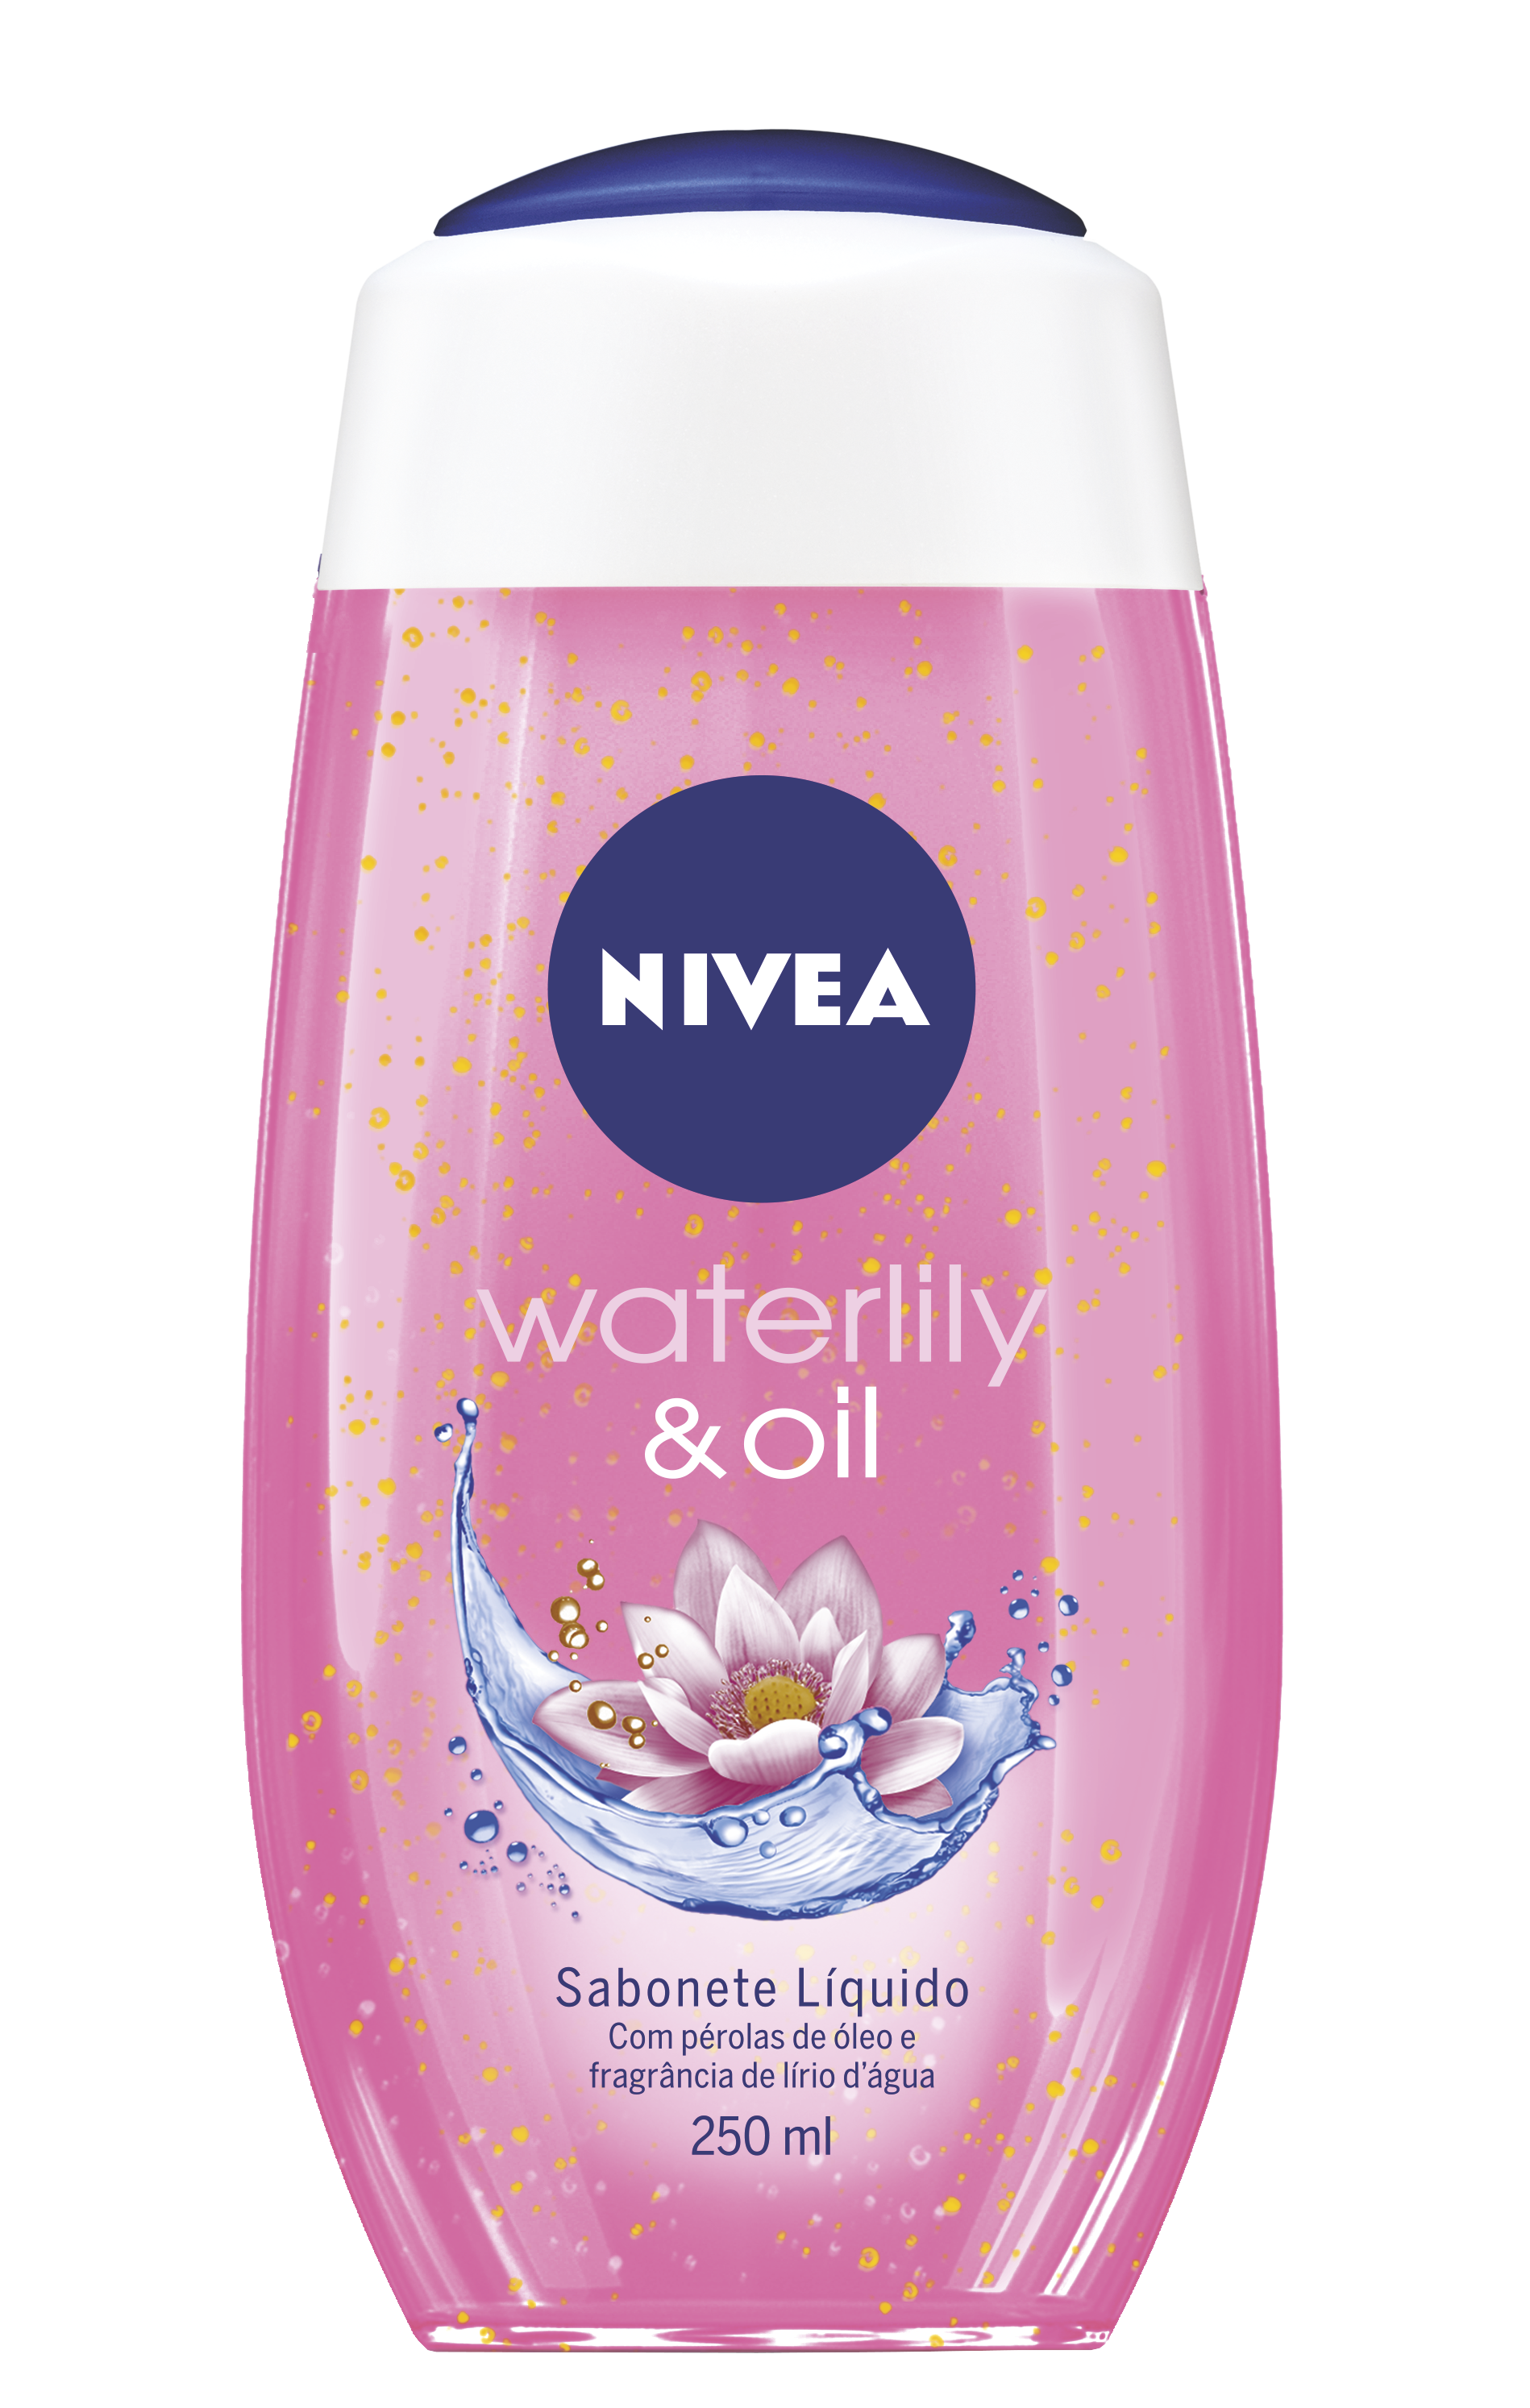 NIVEA_SABONETE LIQUIDO Waterlily & Oil - 250ML